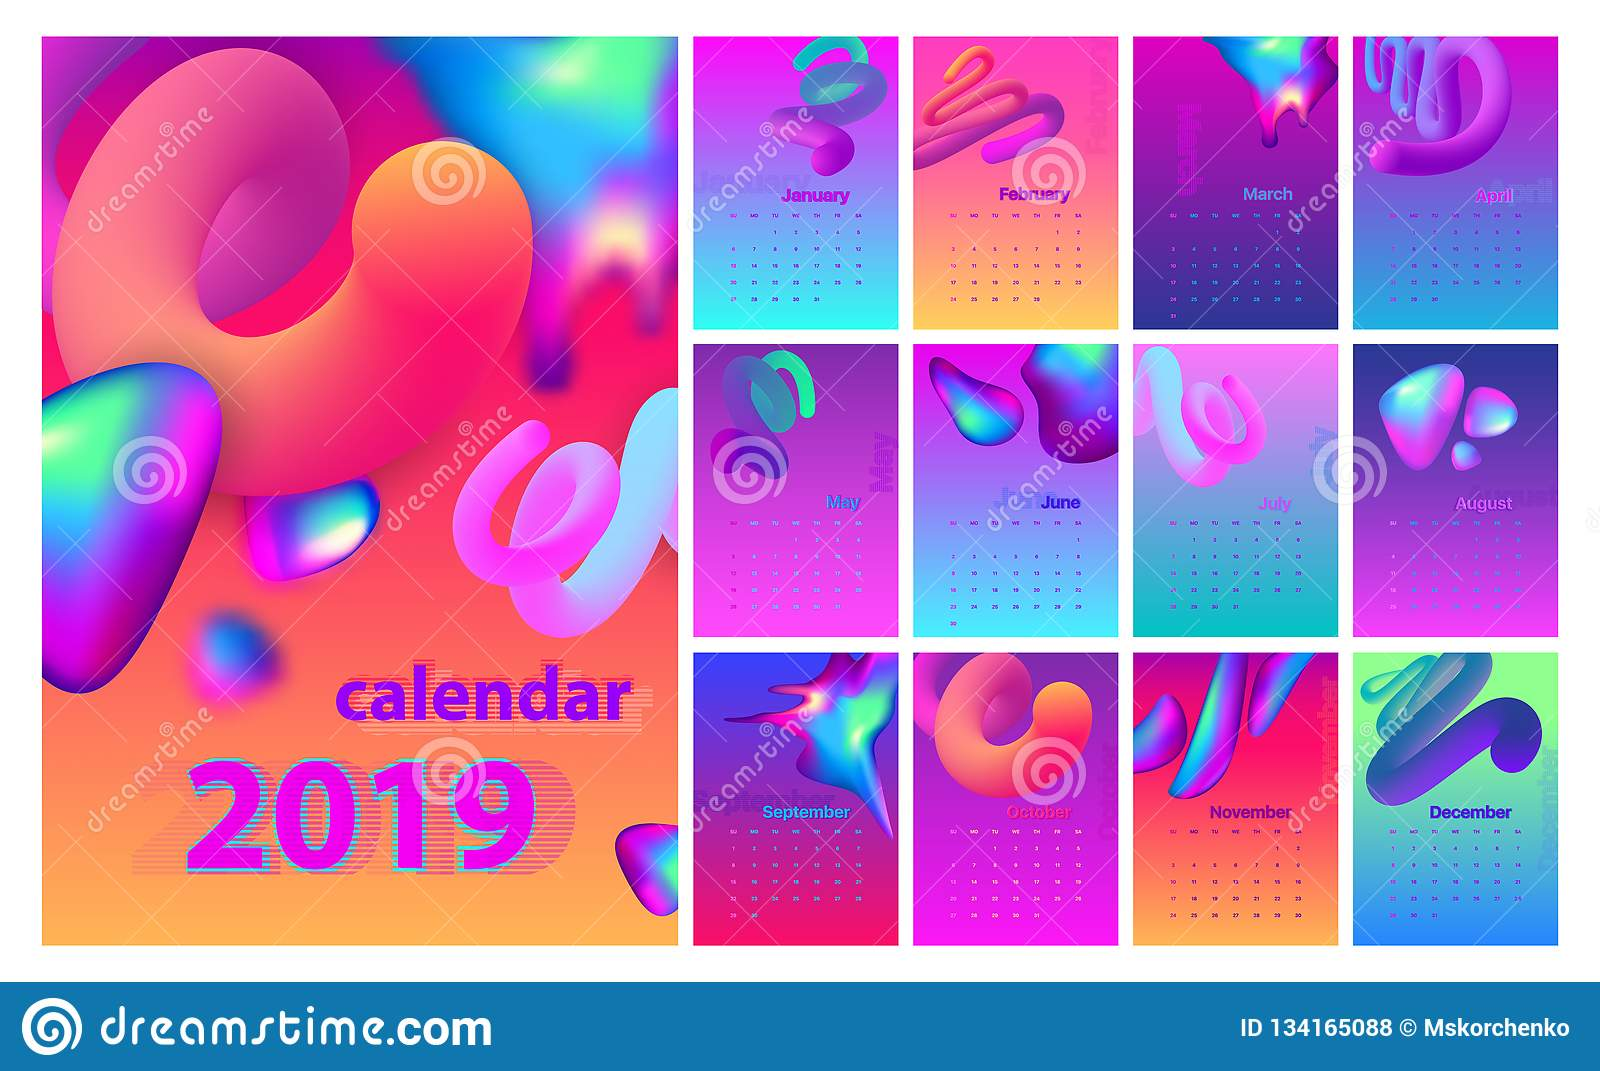 Cool Calendars 2019 Abstract Minimal Calendar Design For 2019. Colorful Set. Stock